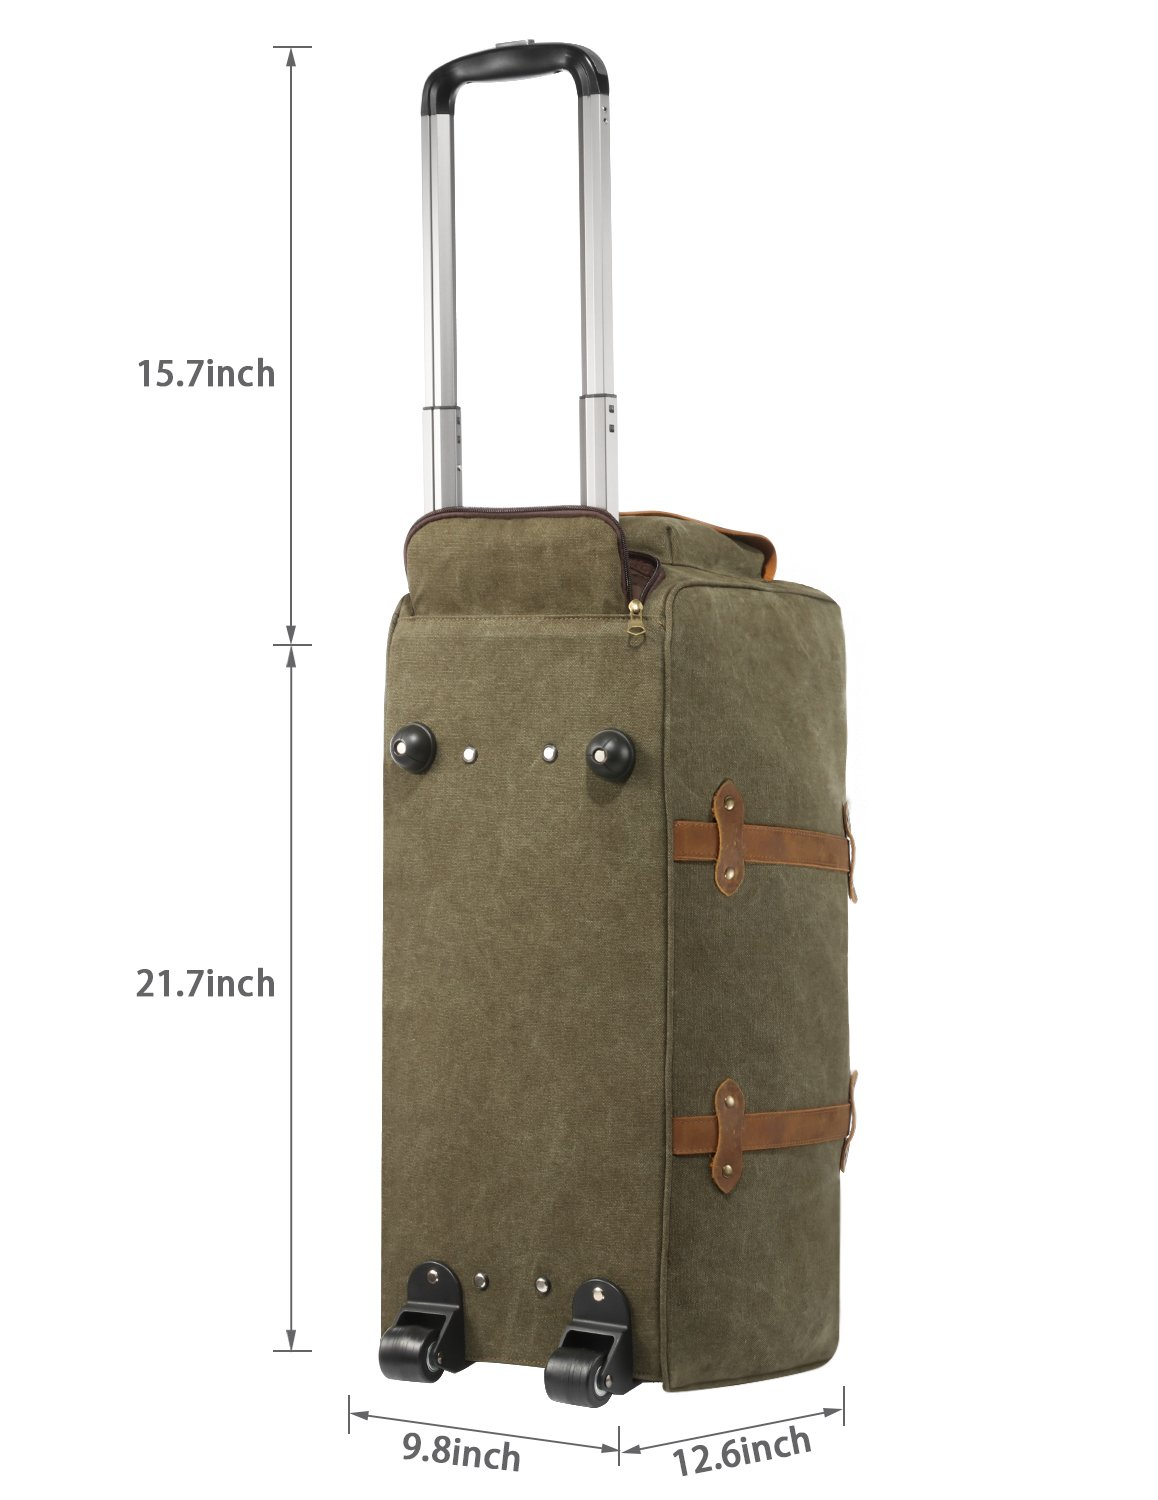 Kattee Rolling Duffle Bag with Wheels Canvas Travel Luggage Duffel Bag 50L (Army Green) by Kattee (Image #3)